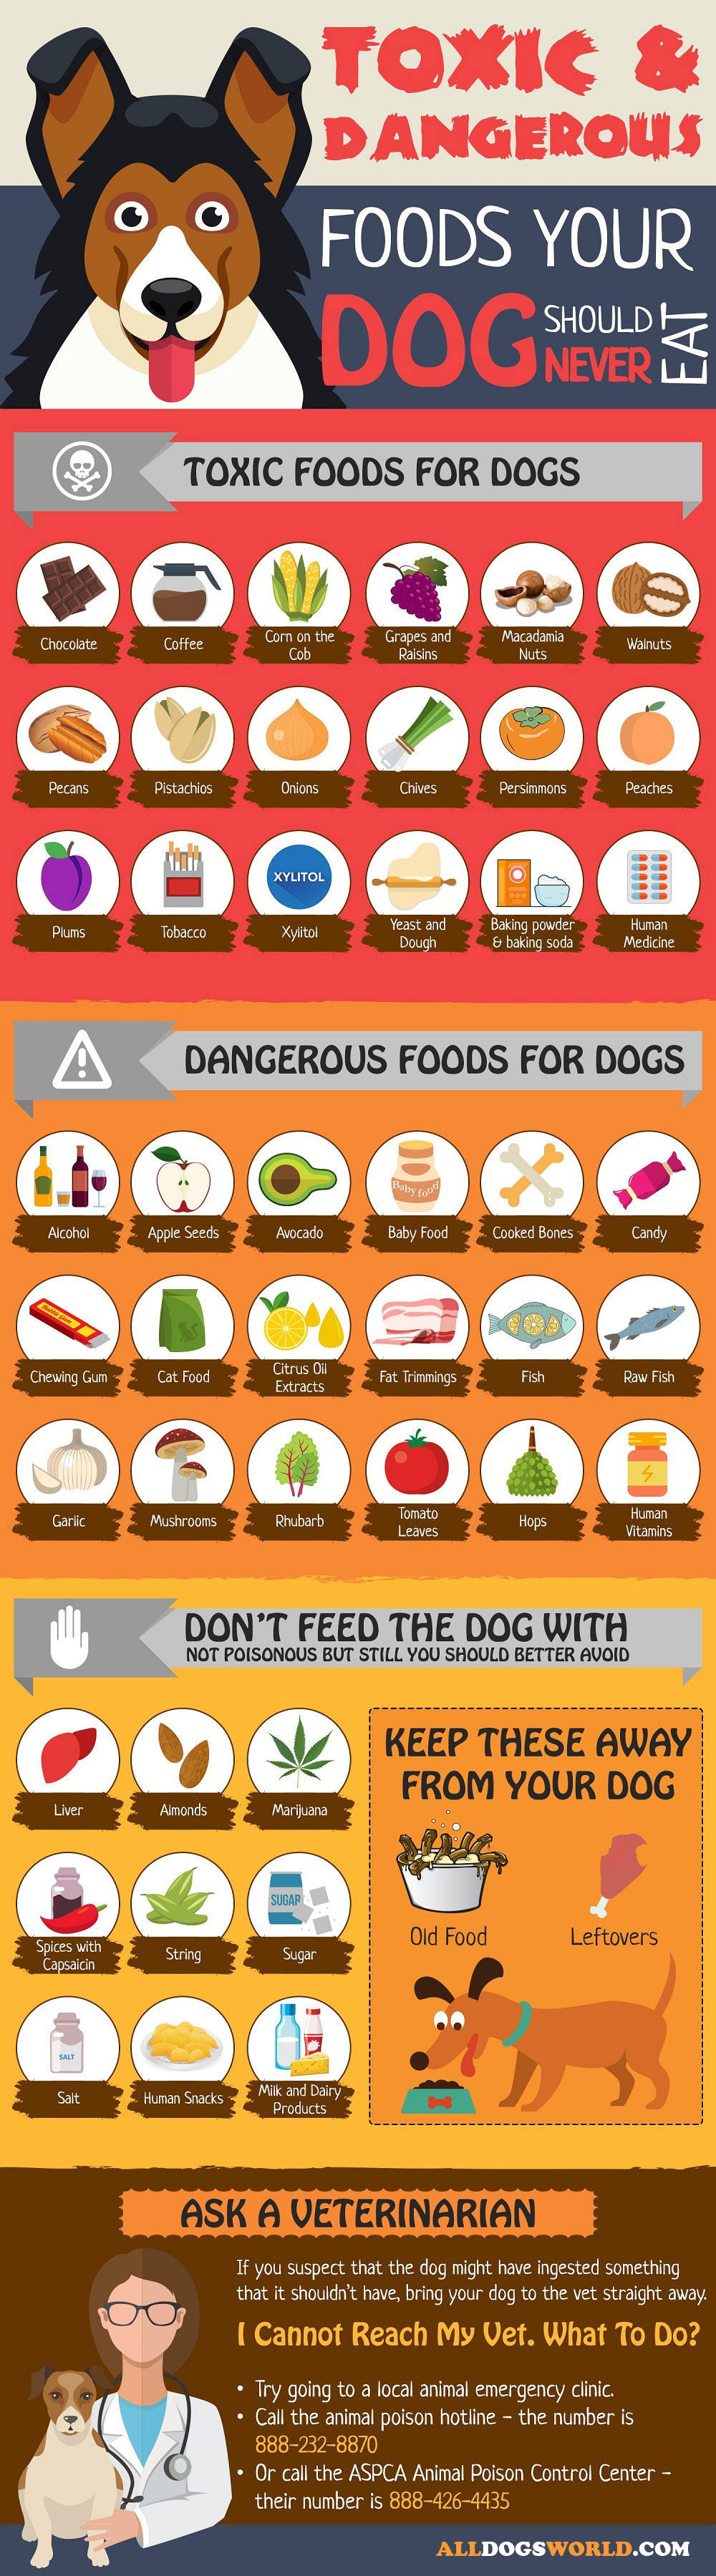 Toxic Foods for Dogs - Infographic